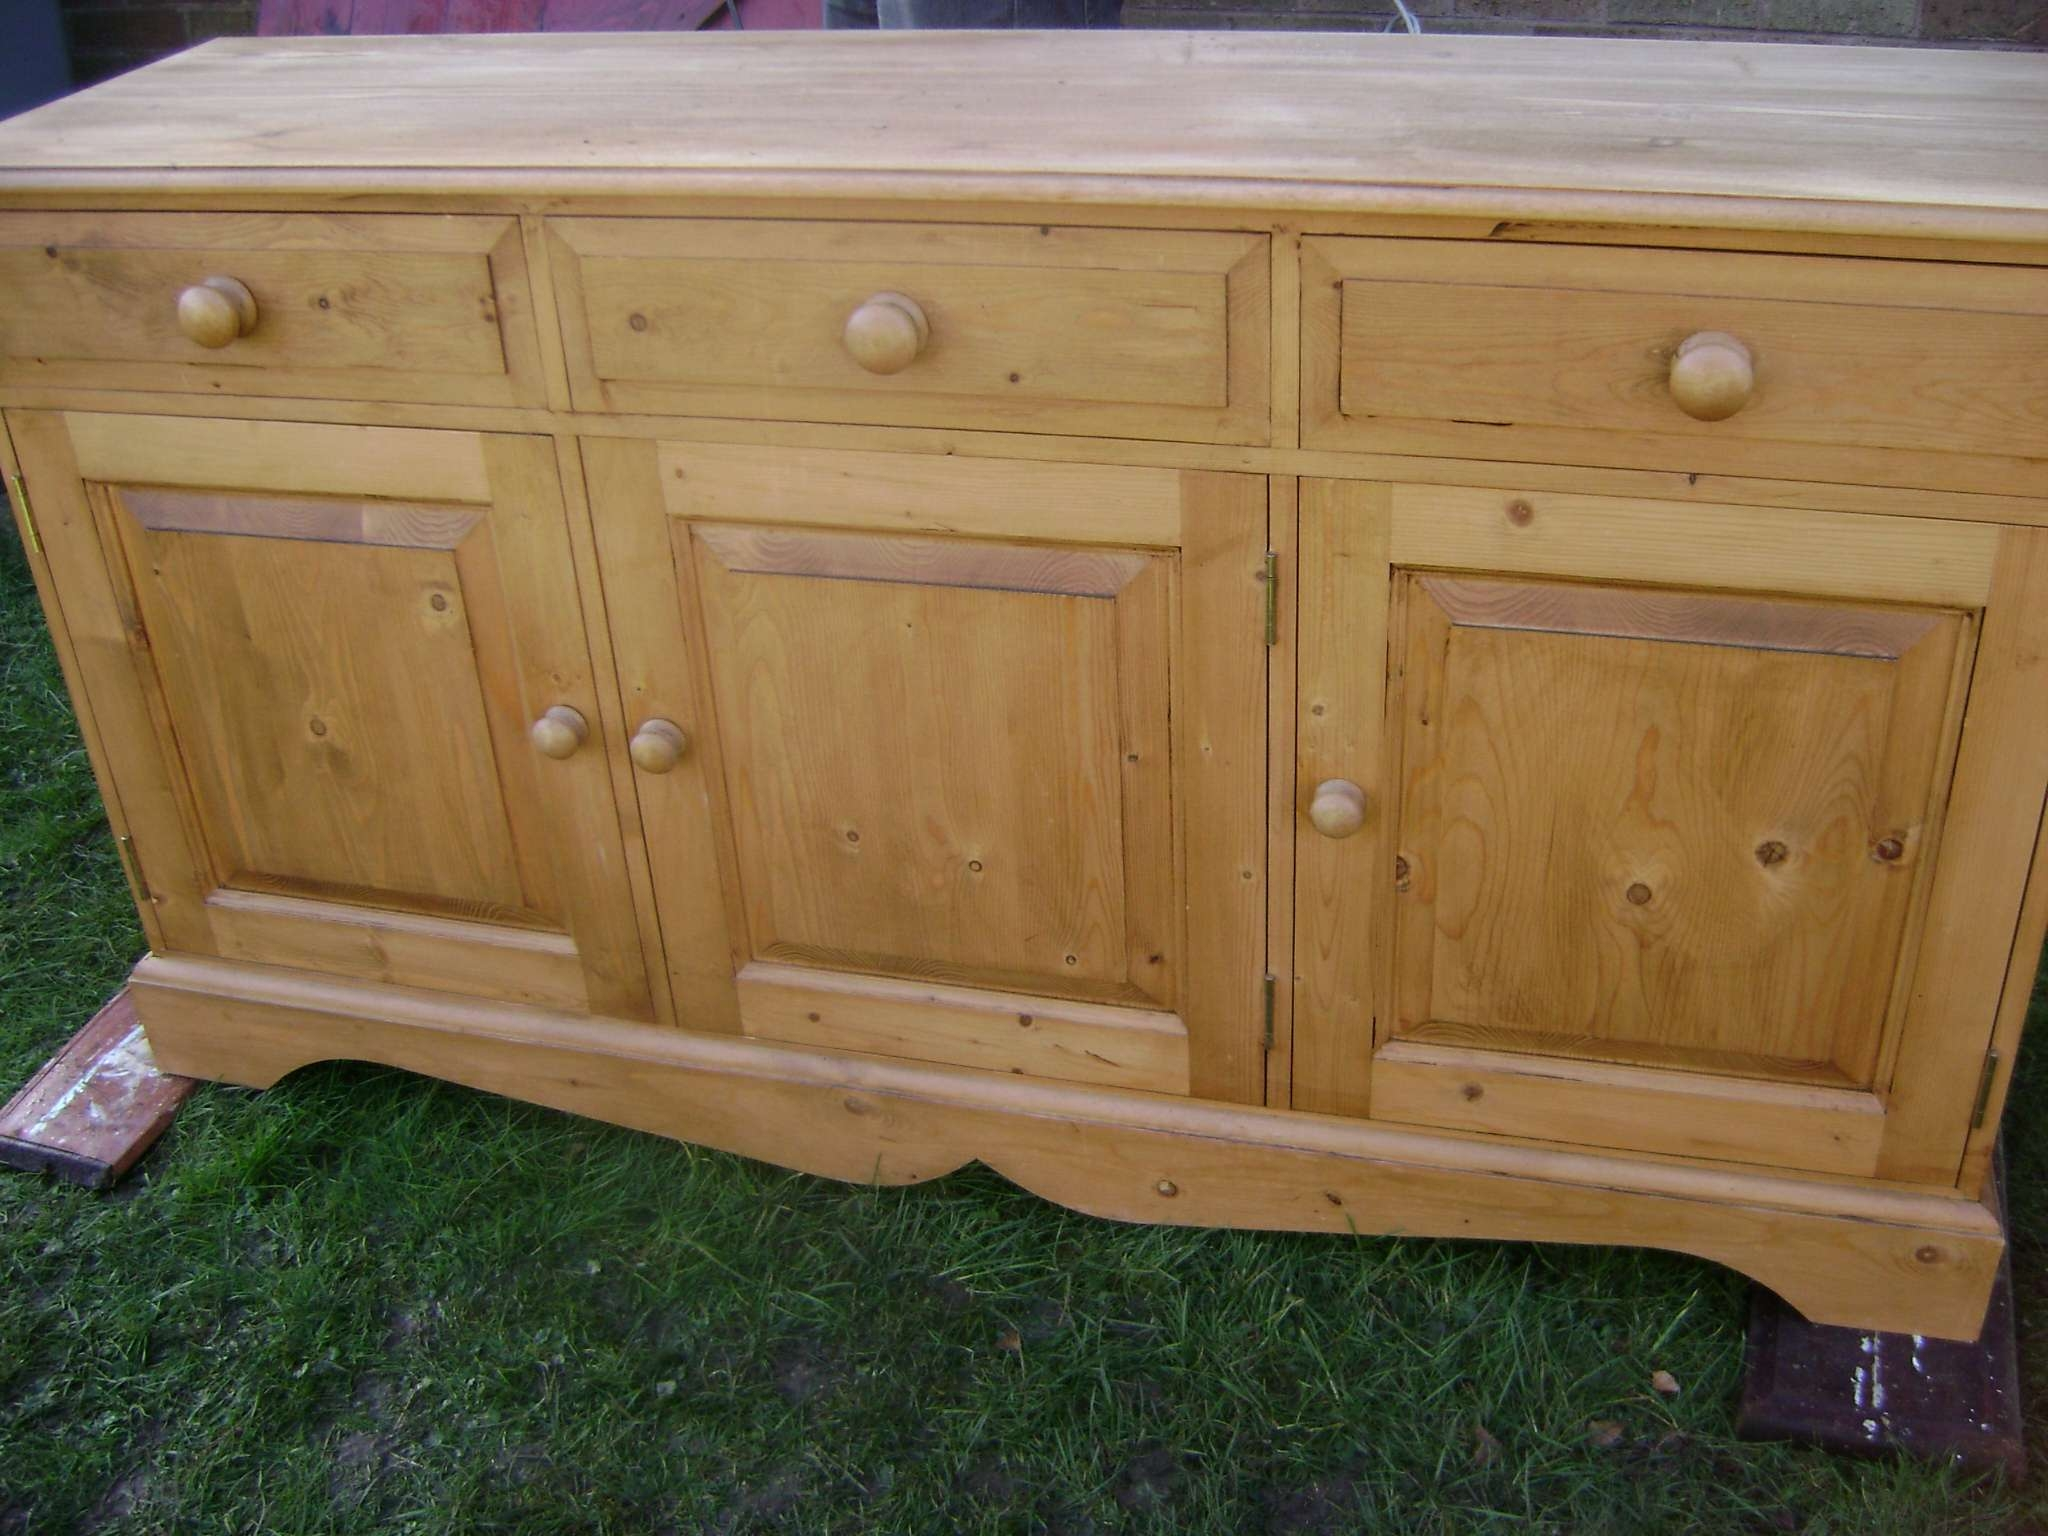 Painted Dresser | The Barrister's Horse Regarding Pine Sideboards (View 10 of 20)